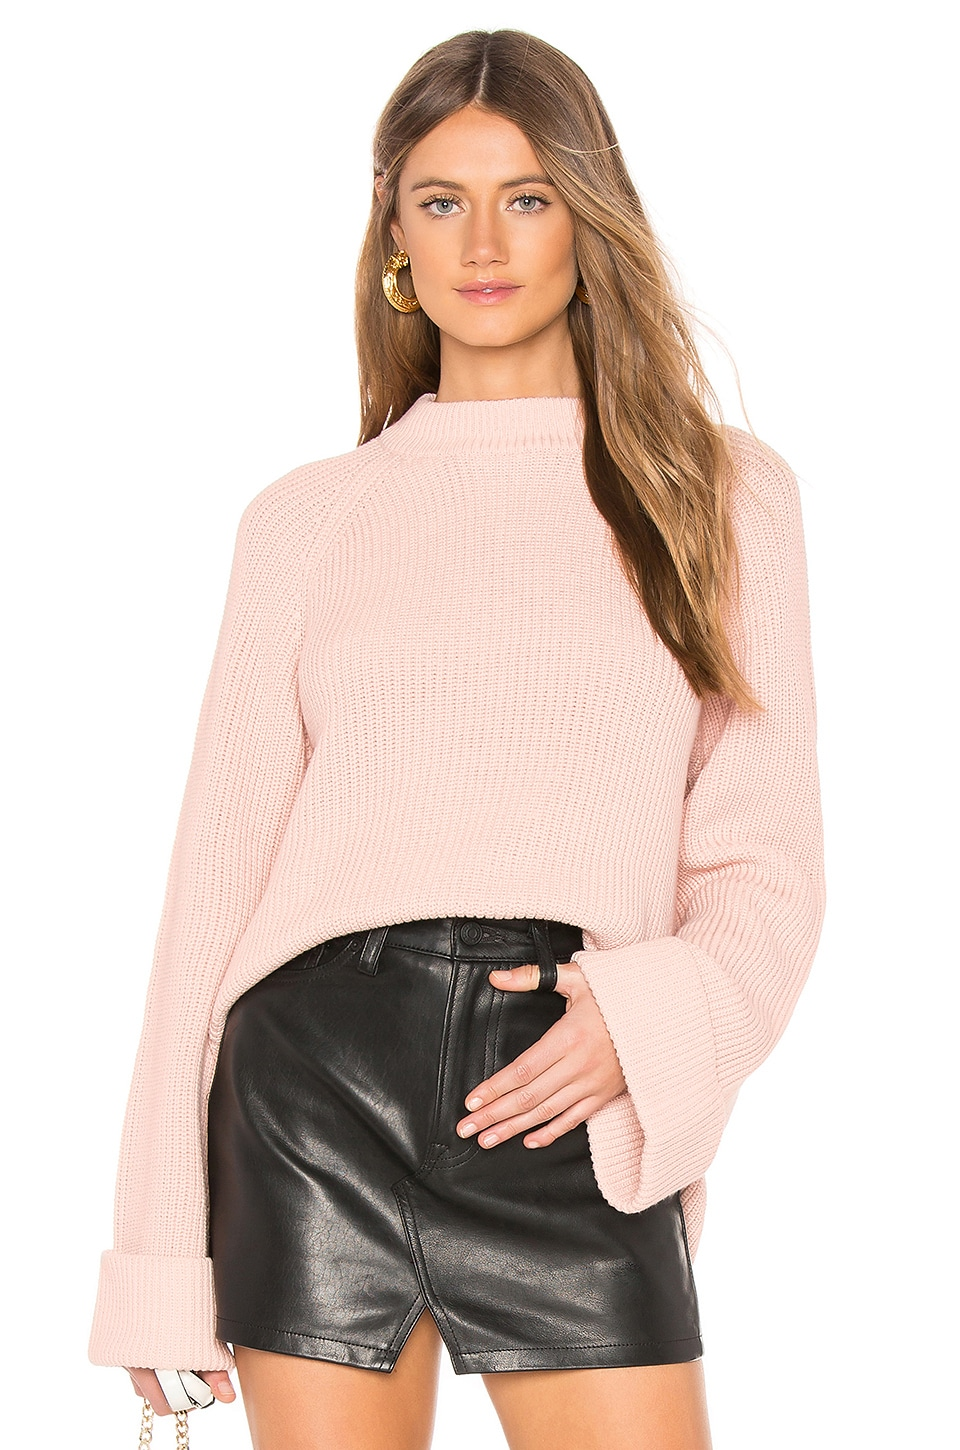 CALLAHAN Ila Sweater in Blush